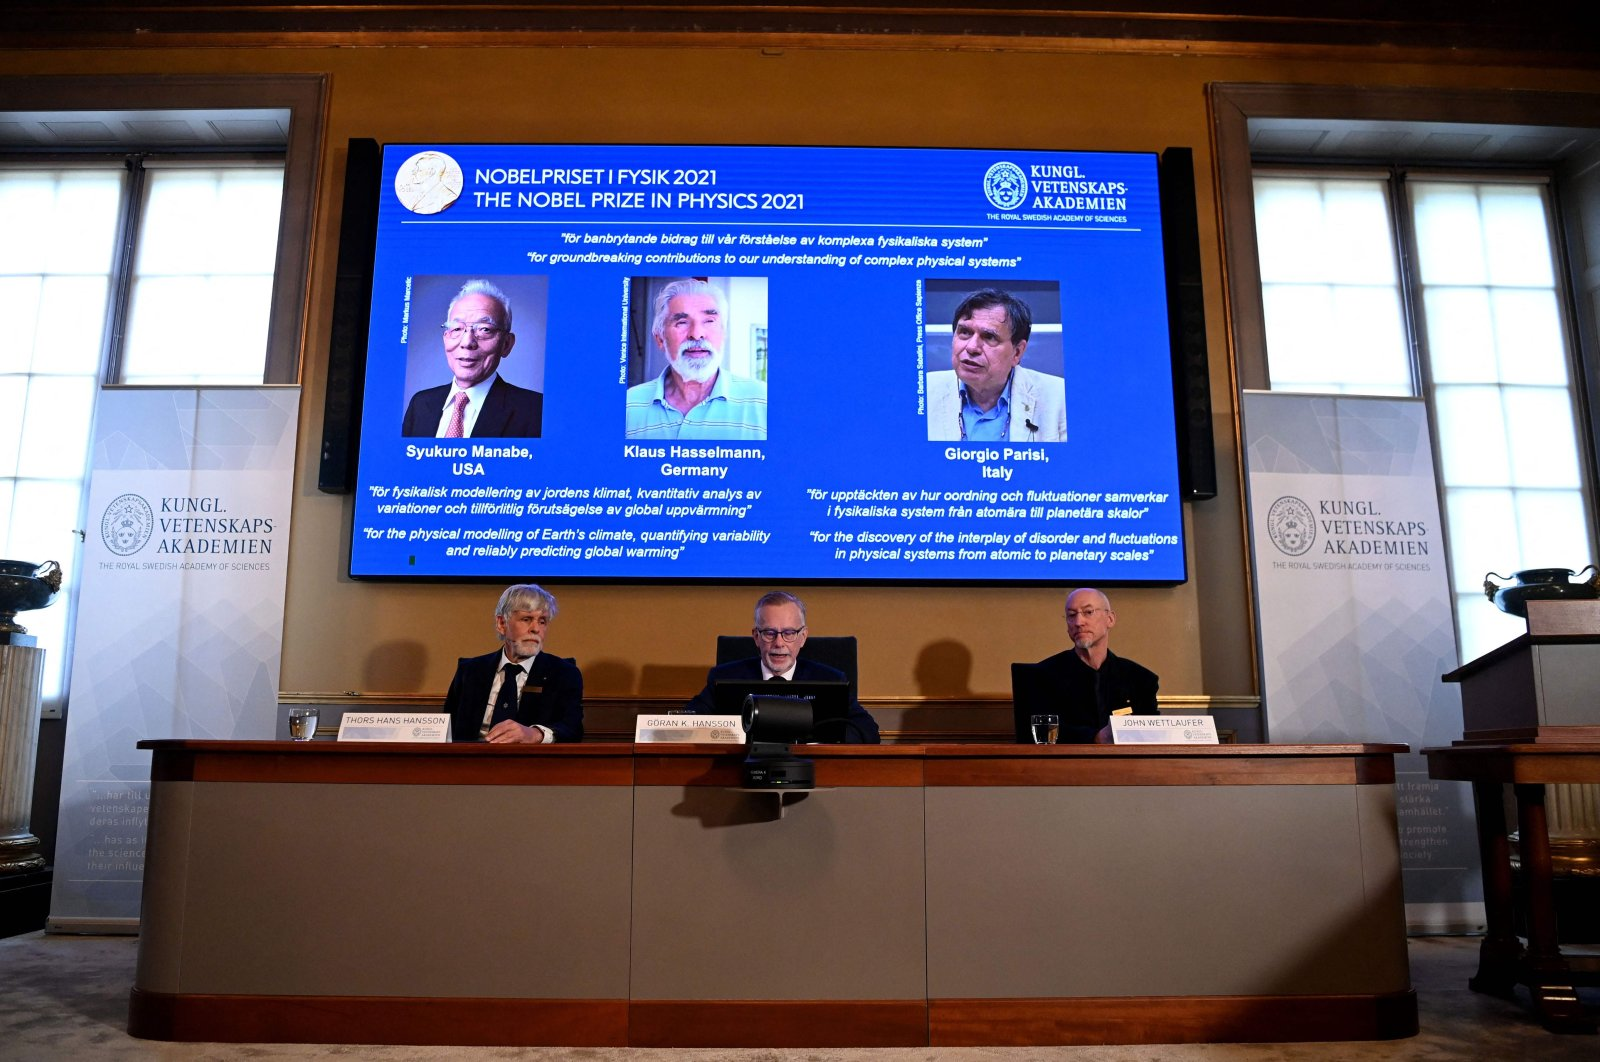 Goran K. Hansson (C), Secretary General of the Royal Swedish Academy of Sciences, and members of the Nobel Committee for Physics Thors Hans Hansson (L) and John Wettlaufer (R) sit in front of a screen displaying the co-winners of the 2021 Nobel Prize in Physics (L-R) Syukuro Manabe (U.S.-Japan), Klaus Hasselmann (Germany) and Giorgio Parisi (Italy) at the Royal Swedish Academy of Sciences in Stockholm, Sweden, Oct. 5, 2021. (AFP Photo)